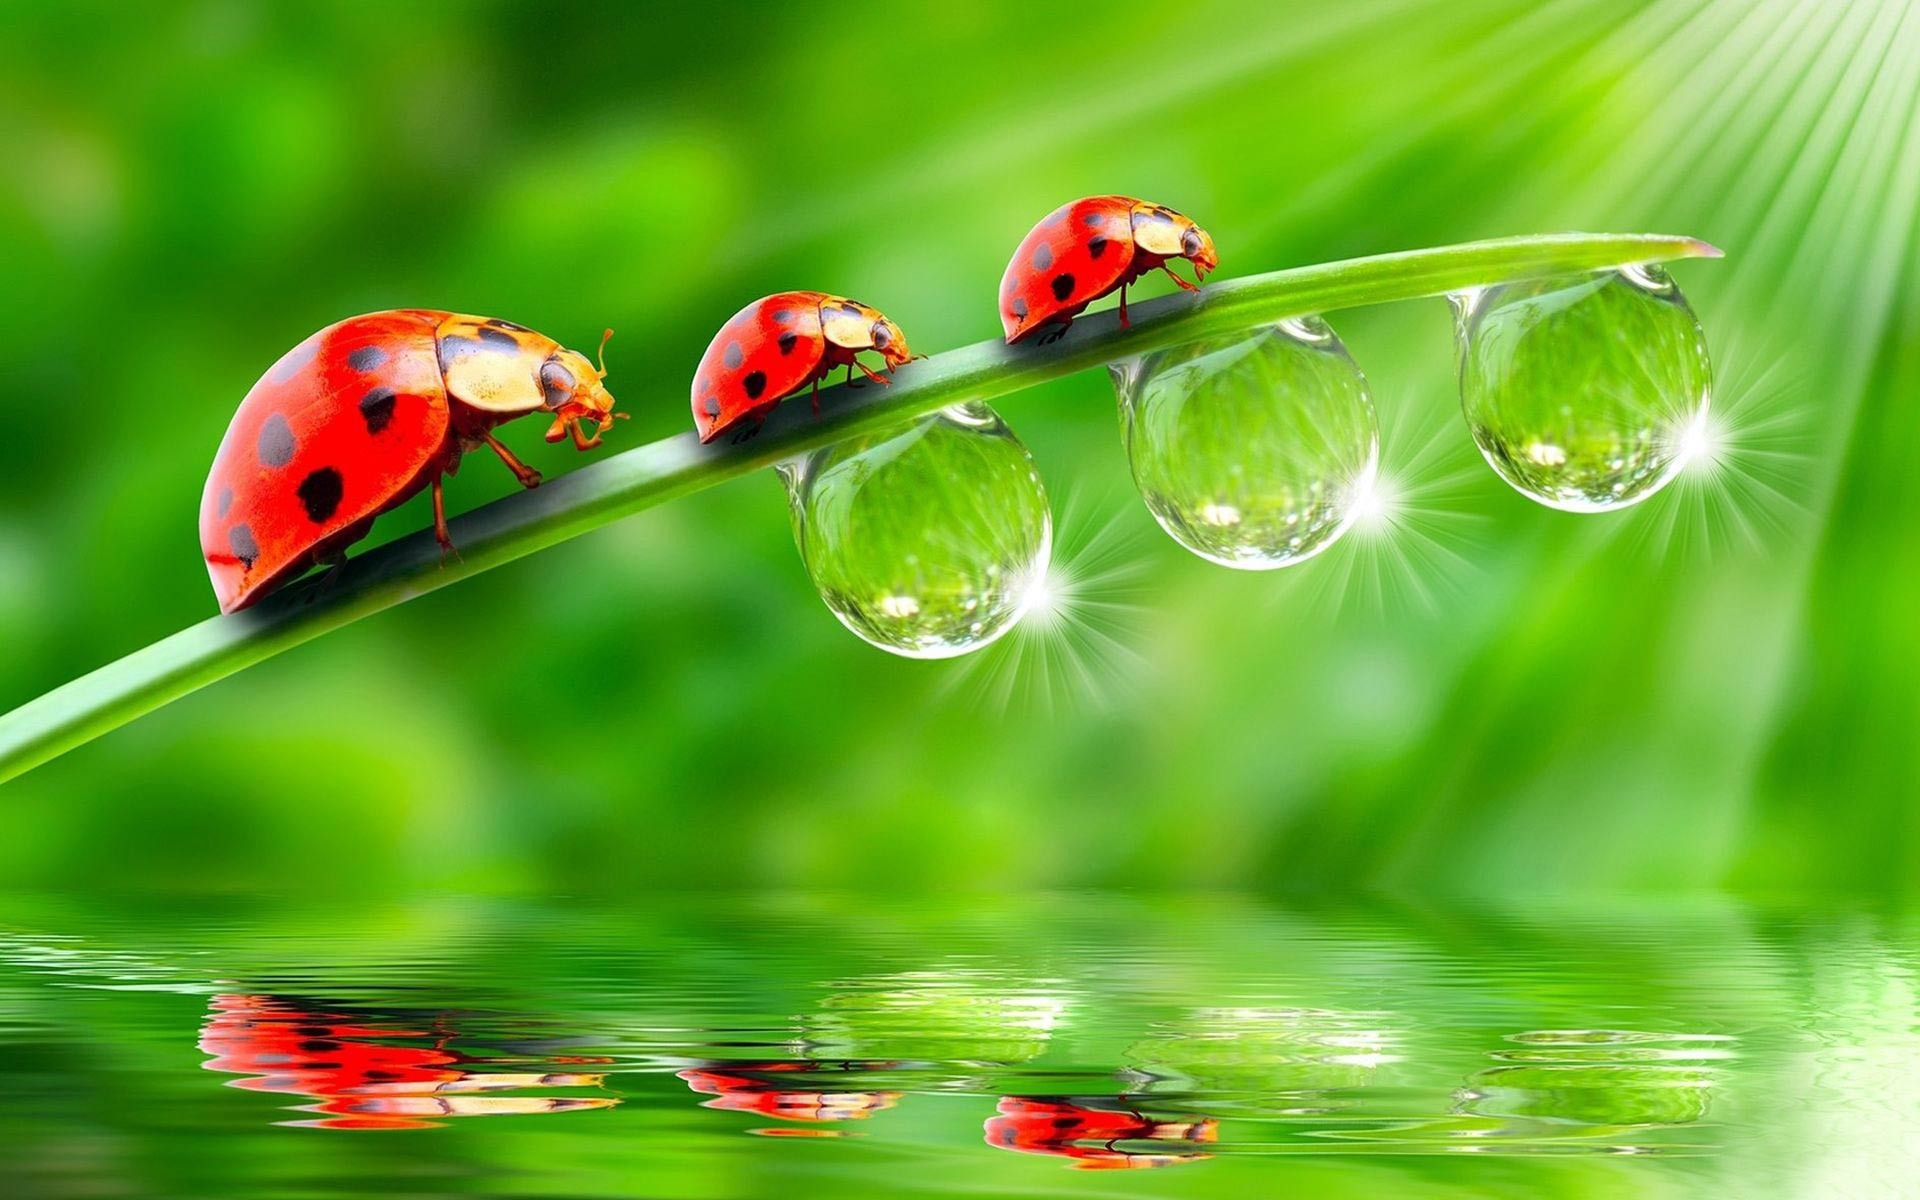 Cute Ladybug Wallpaper High Quality Resolution for Background